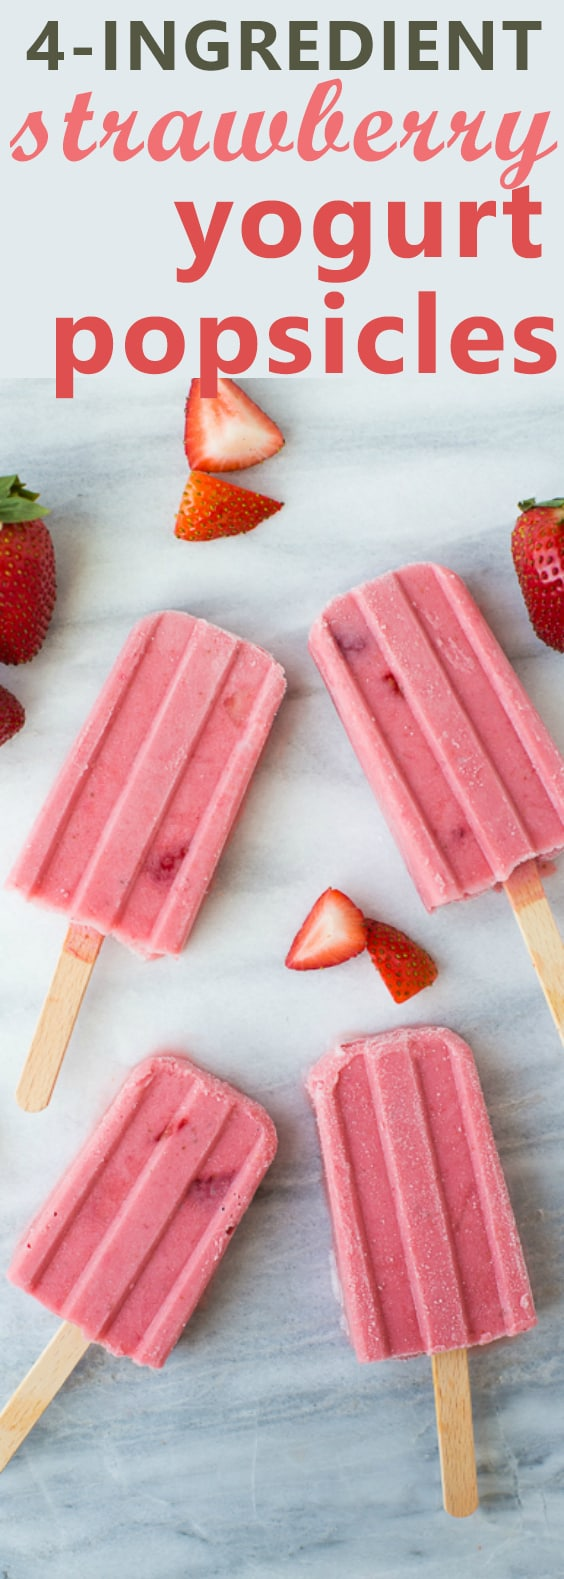 4-Ingredient Healthy Strawberry Yogurt Popsicles! A creamy treat that couldn't be easier to make! Sweetened with honey and easily made dairy-free.